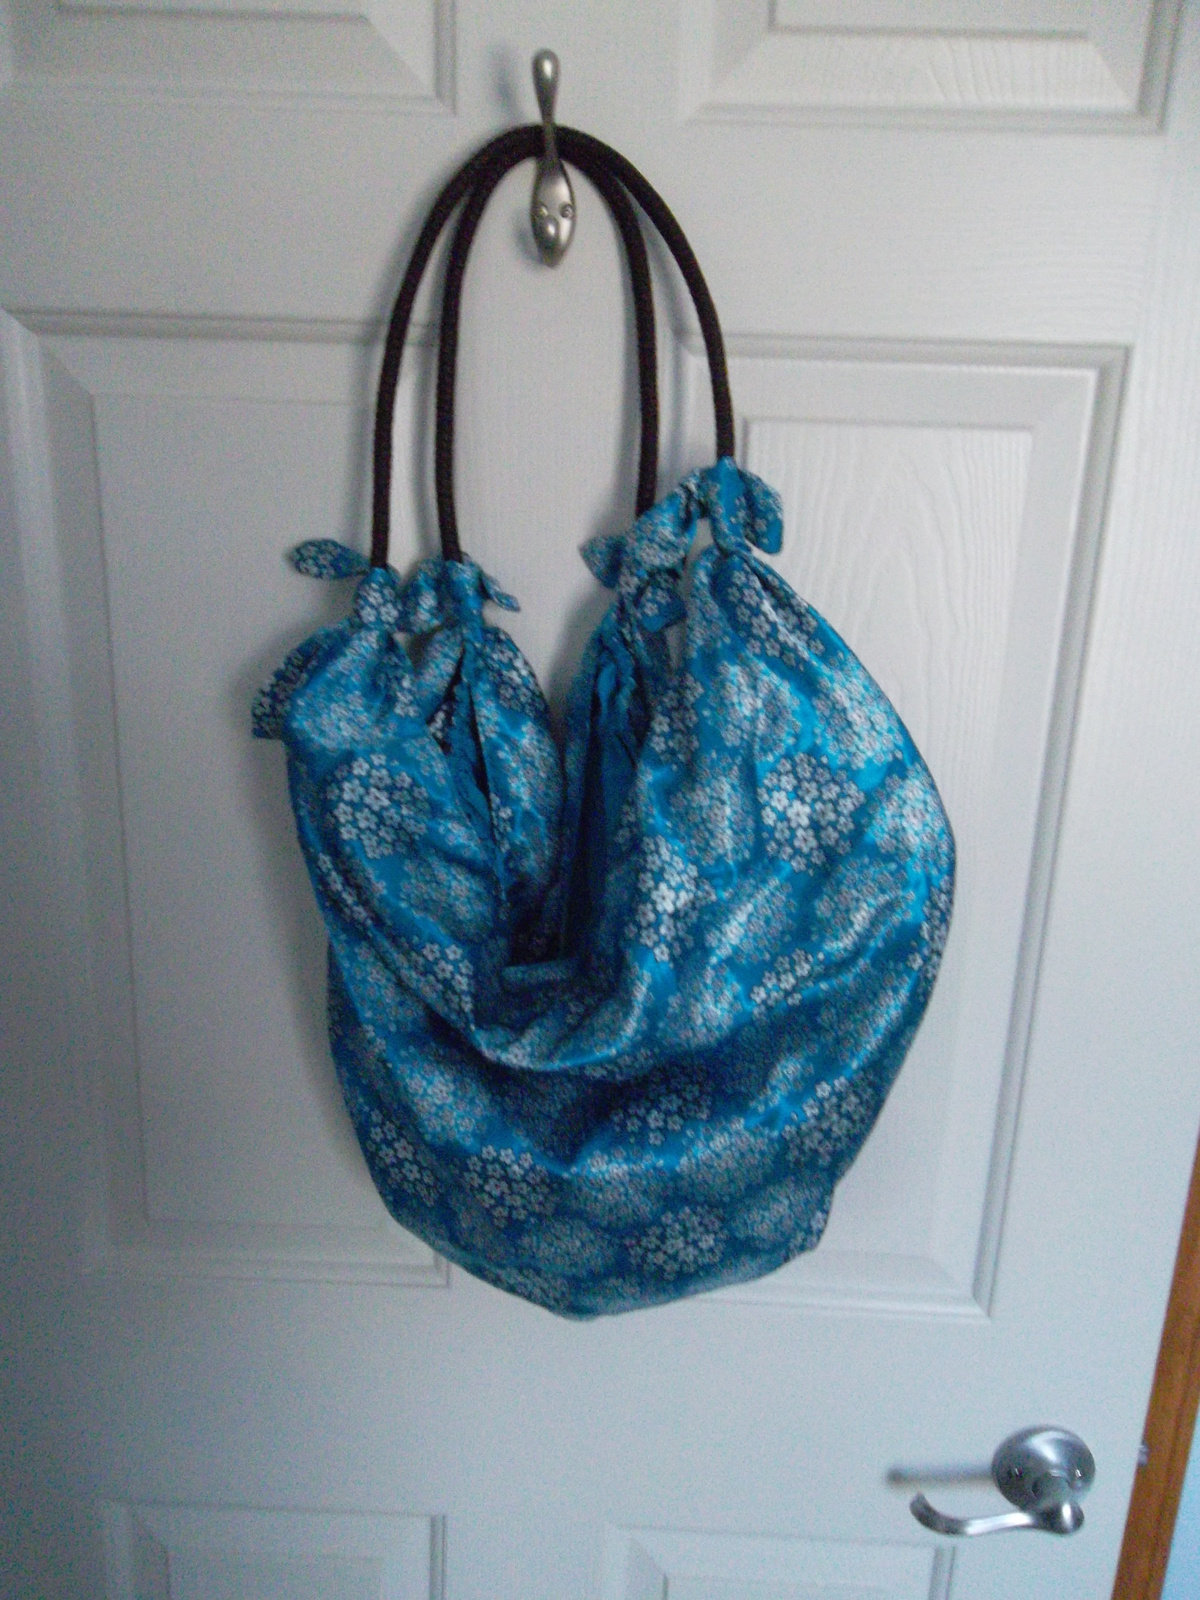 Old navy blue tote audrey 002